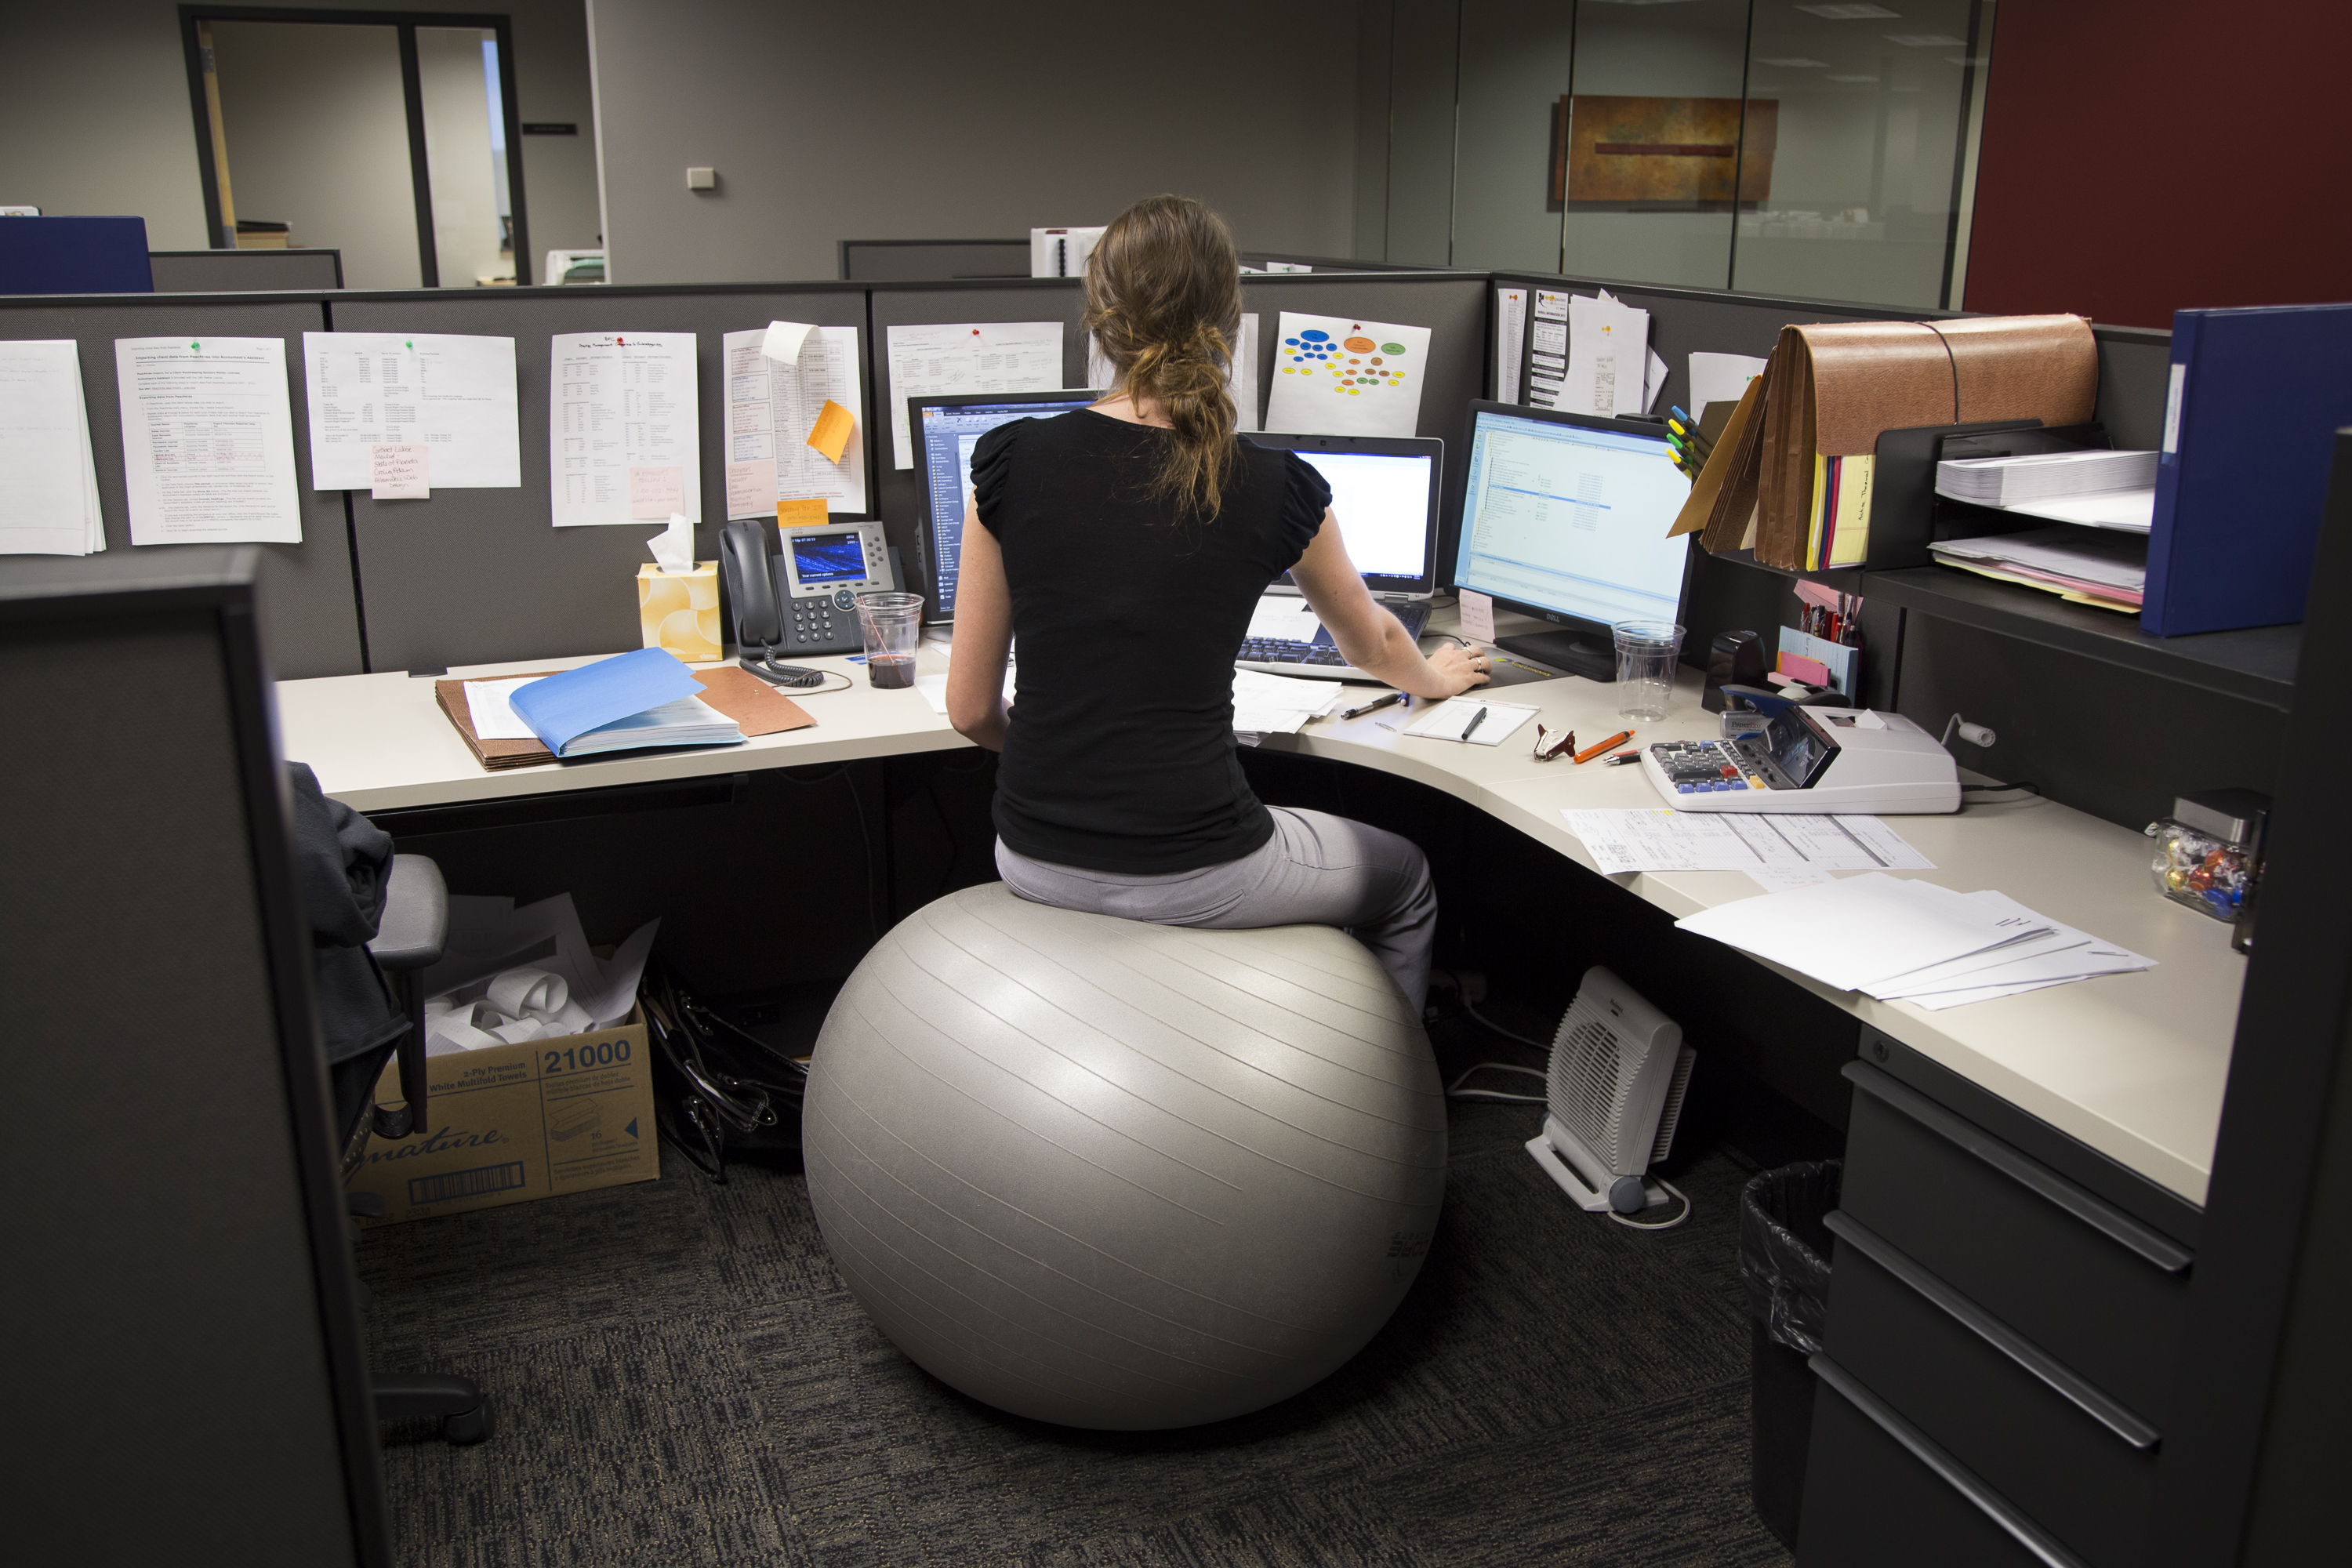 Sit Stand Workstations Treadmill Desks Isometric Ball Chairs And Other Alternatives To More Traditional Office Equipment Are Making Their Way Into